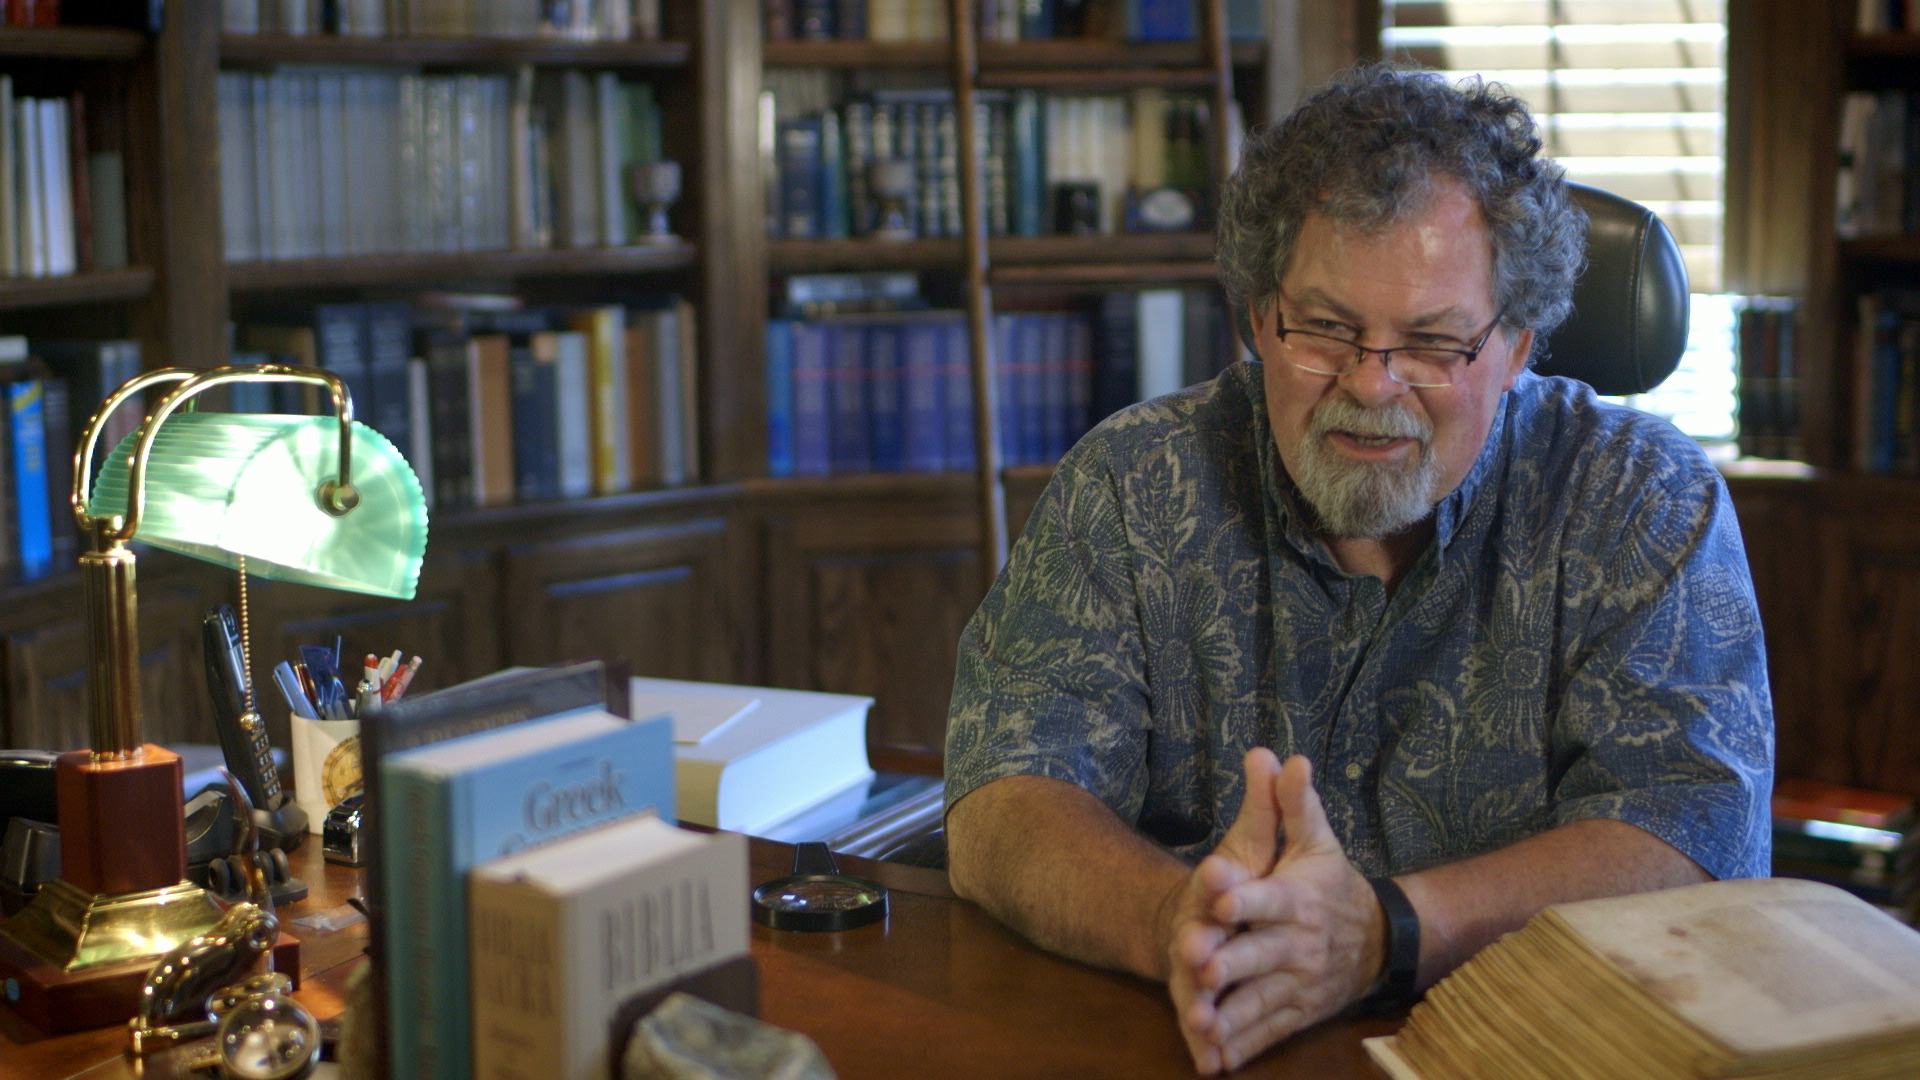 Dr. Daniel Wallace Digitizes Ancient Manuscripts with Daniel B. Wallace